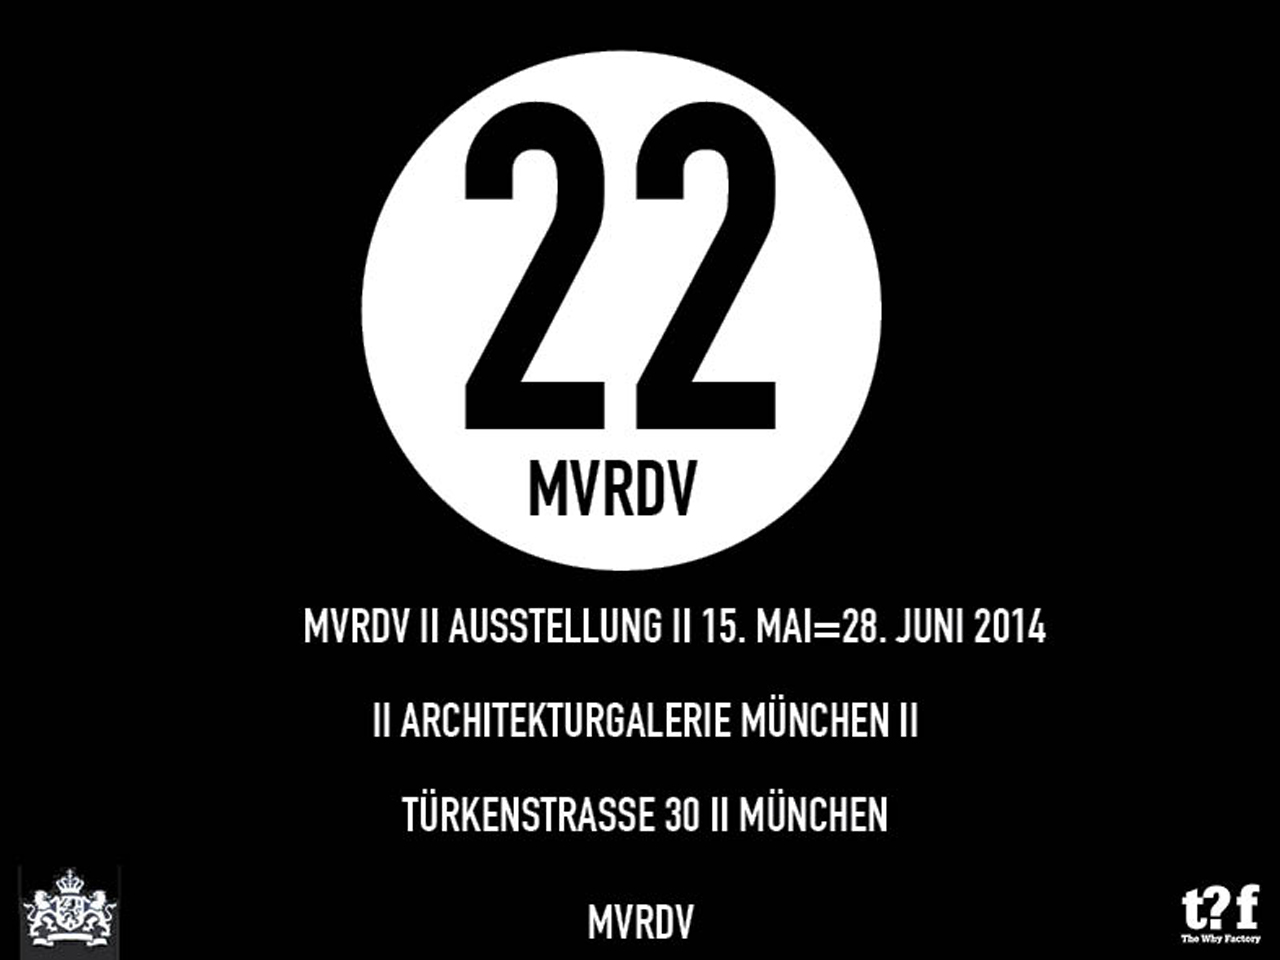 MVRDV Exhibition at the Architekturgalerie München